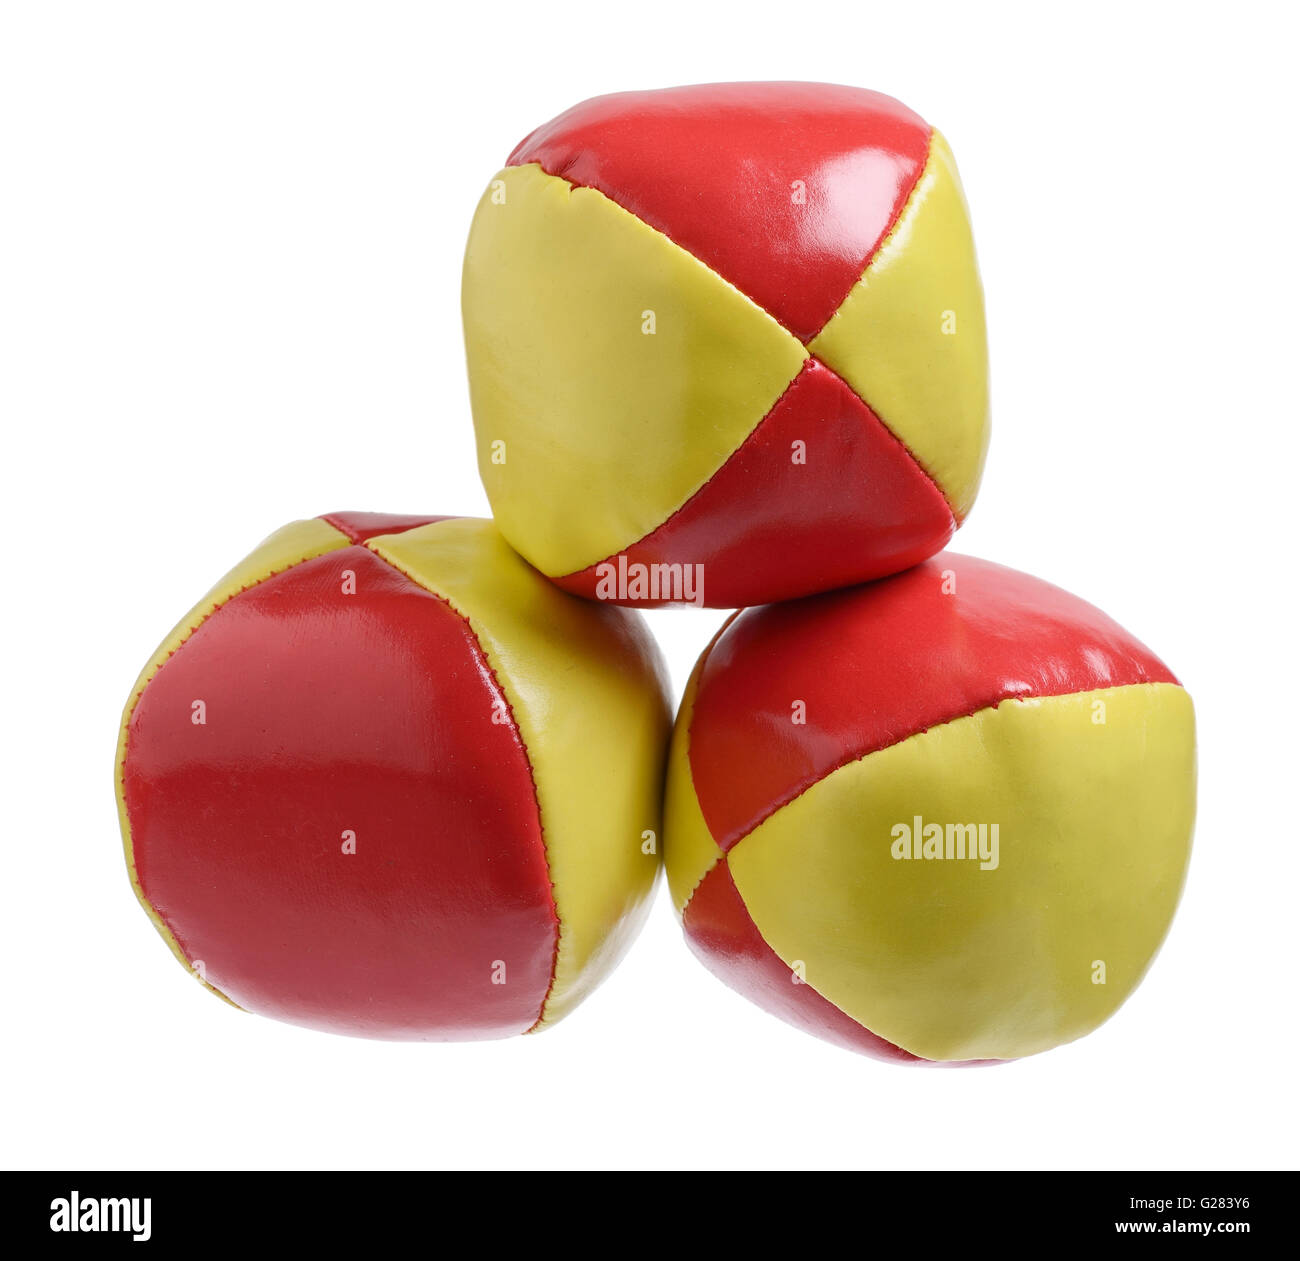 Three red and yellow juggling balls - Stock Image